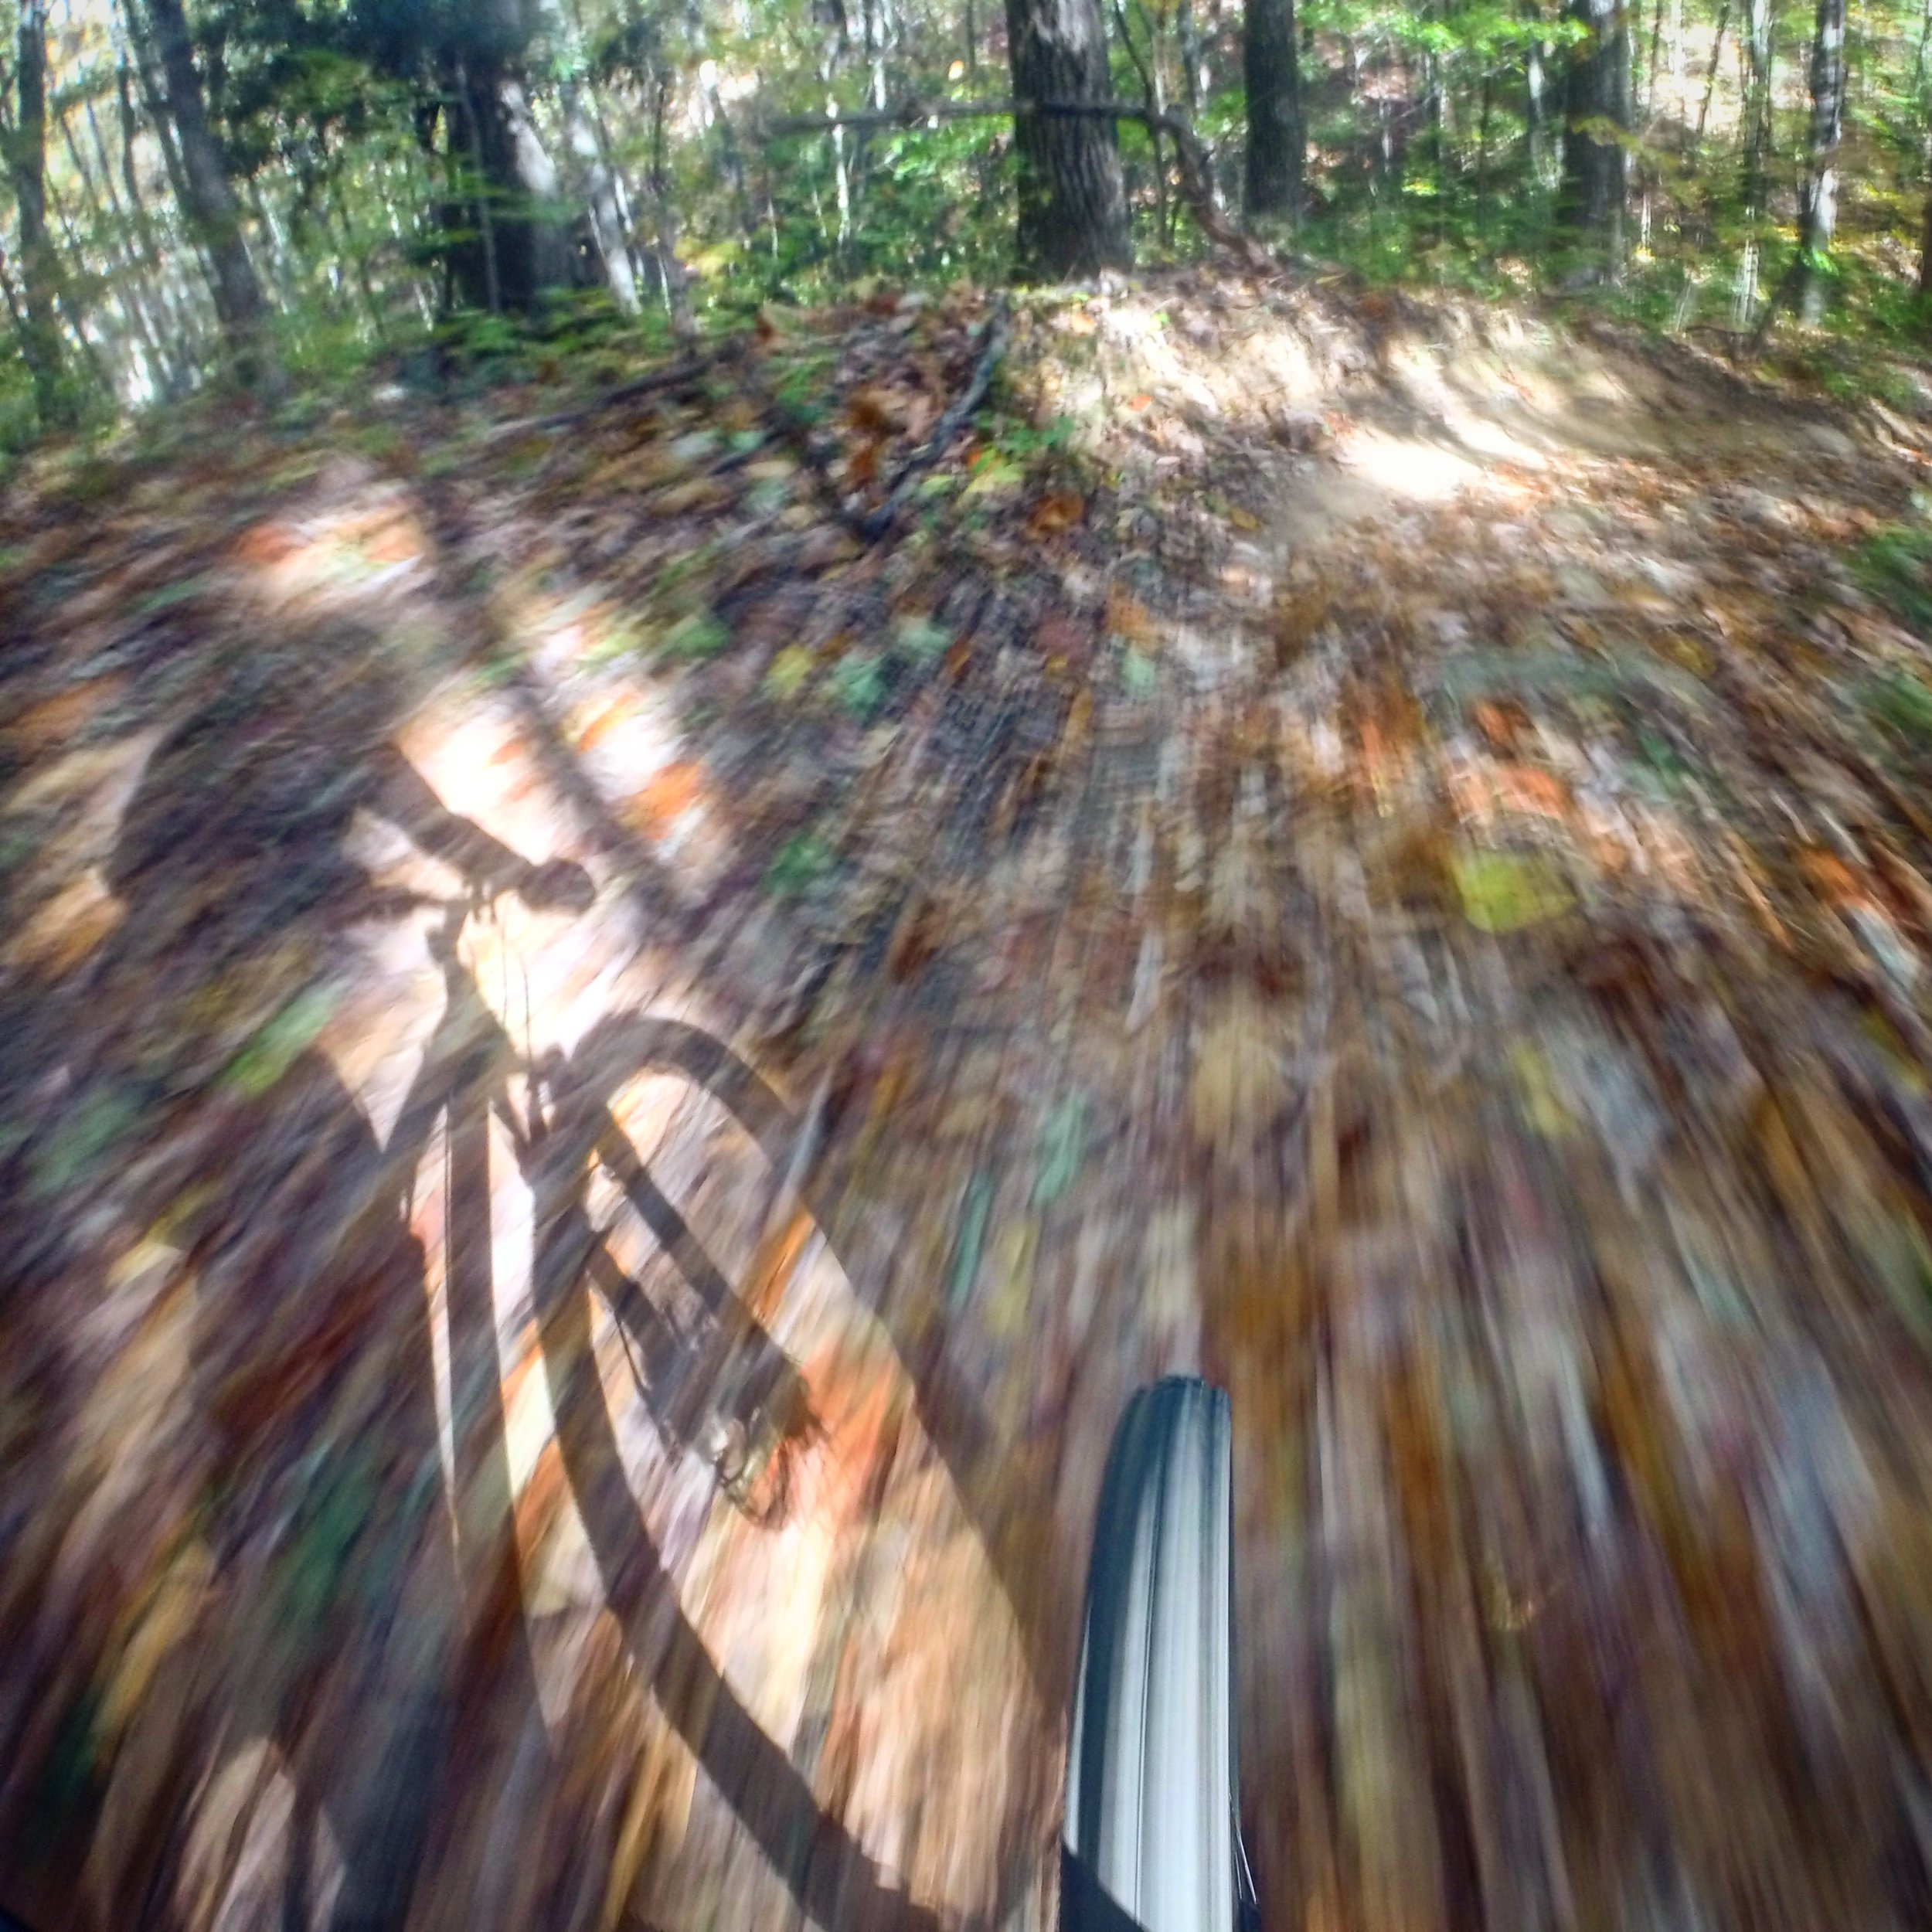 A motion shot captured with my Go Pro mounted on my handlebars.